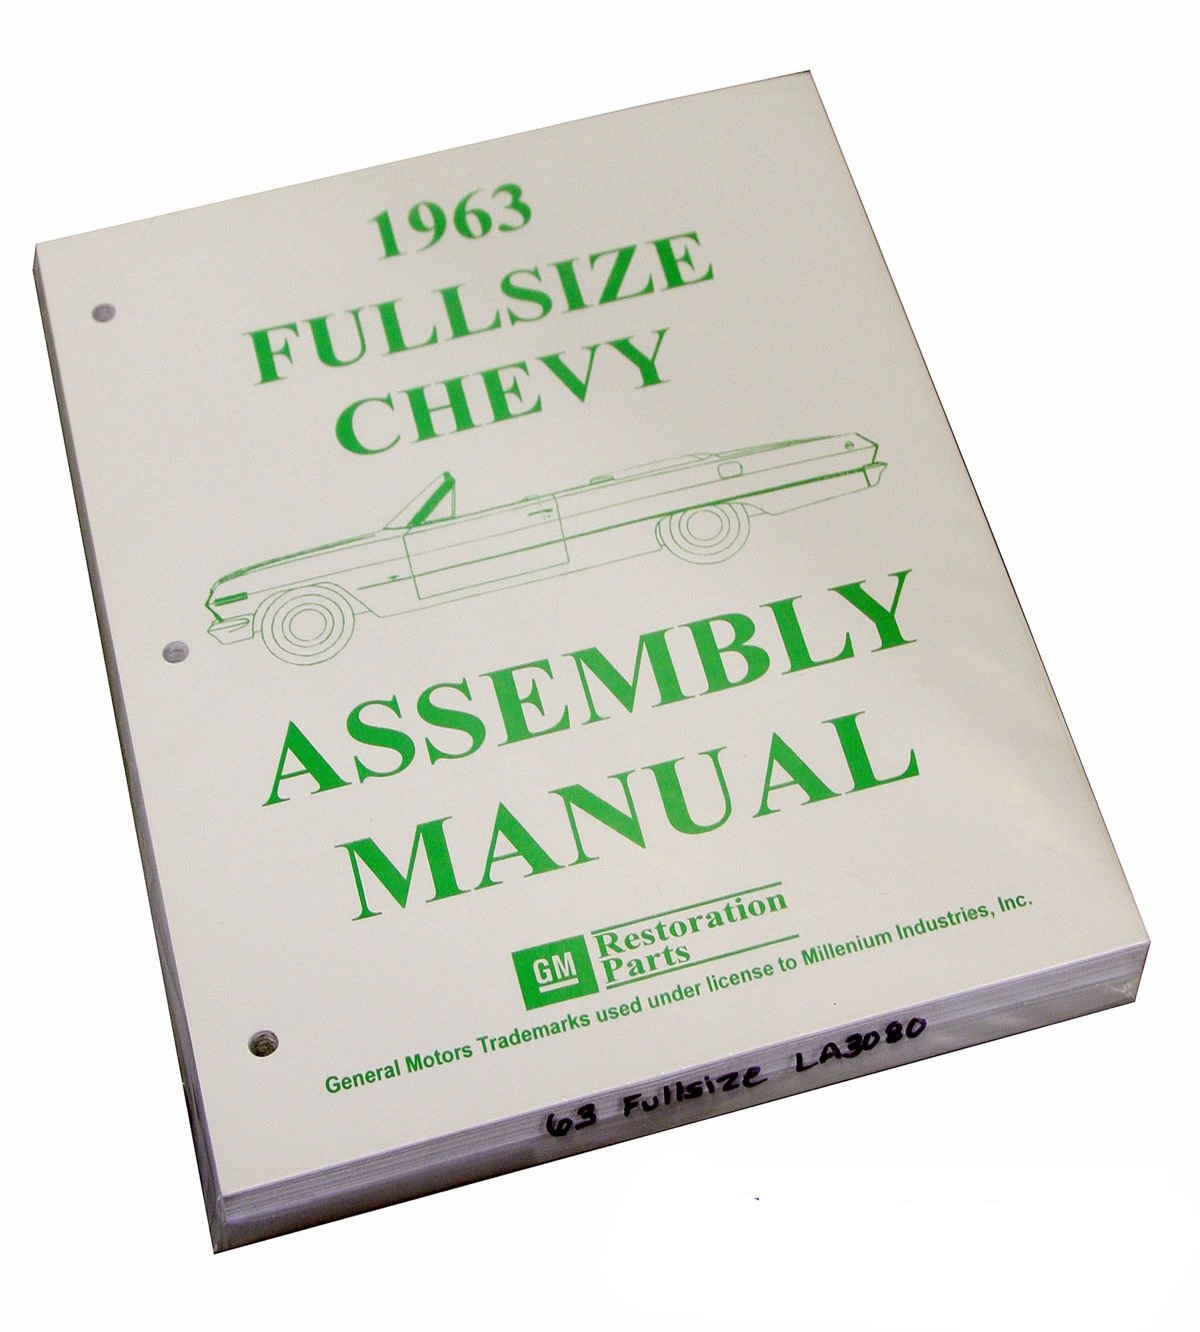 Inline Tube (I-2-14) Factory Assembly Manual for 1963 Full Size Chevrolet Cars Bel Air, Impala, Wagons, etc.